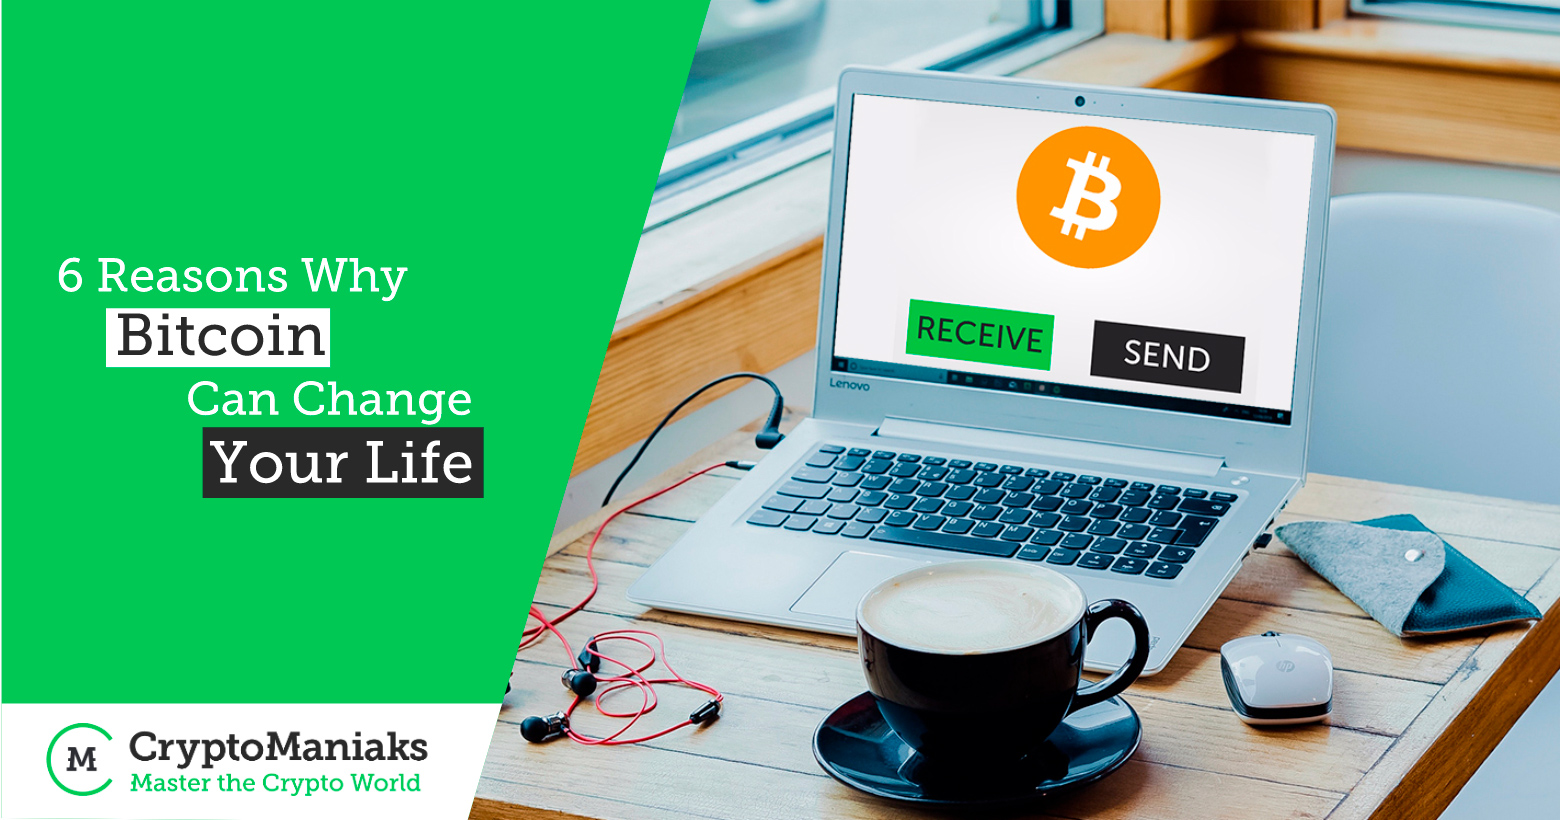 6 Reasons Why Bitcoin Can Change Your Life